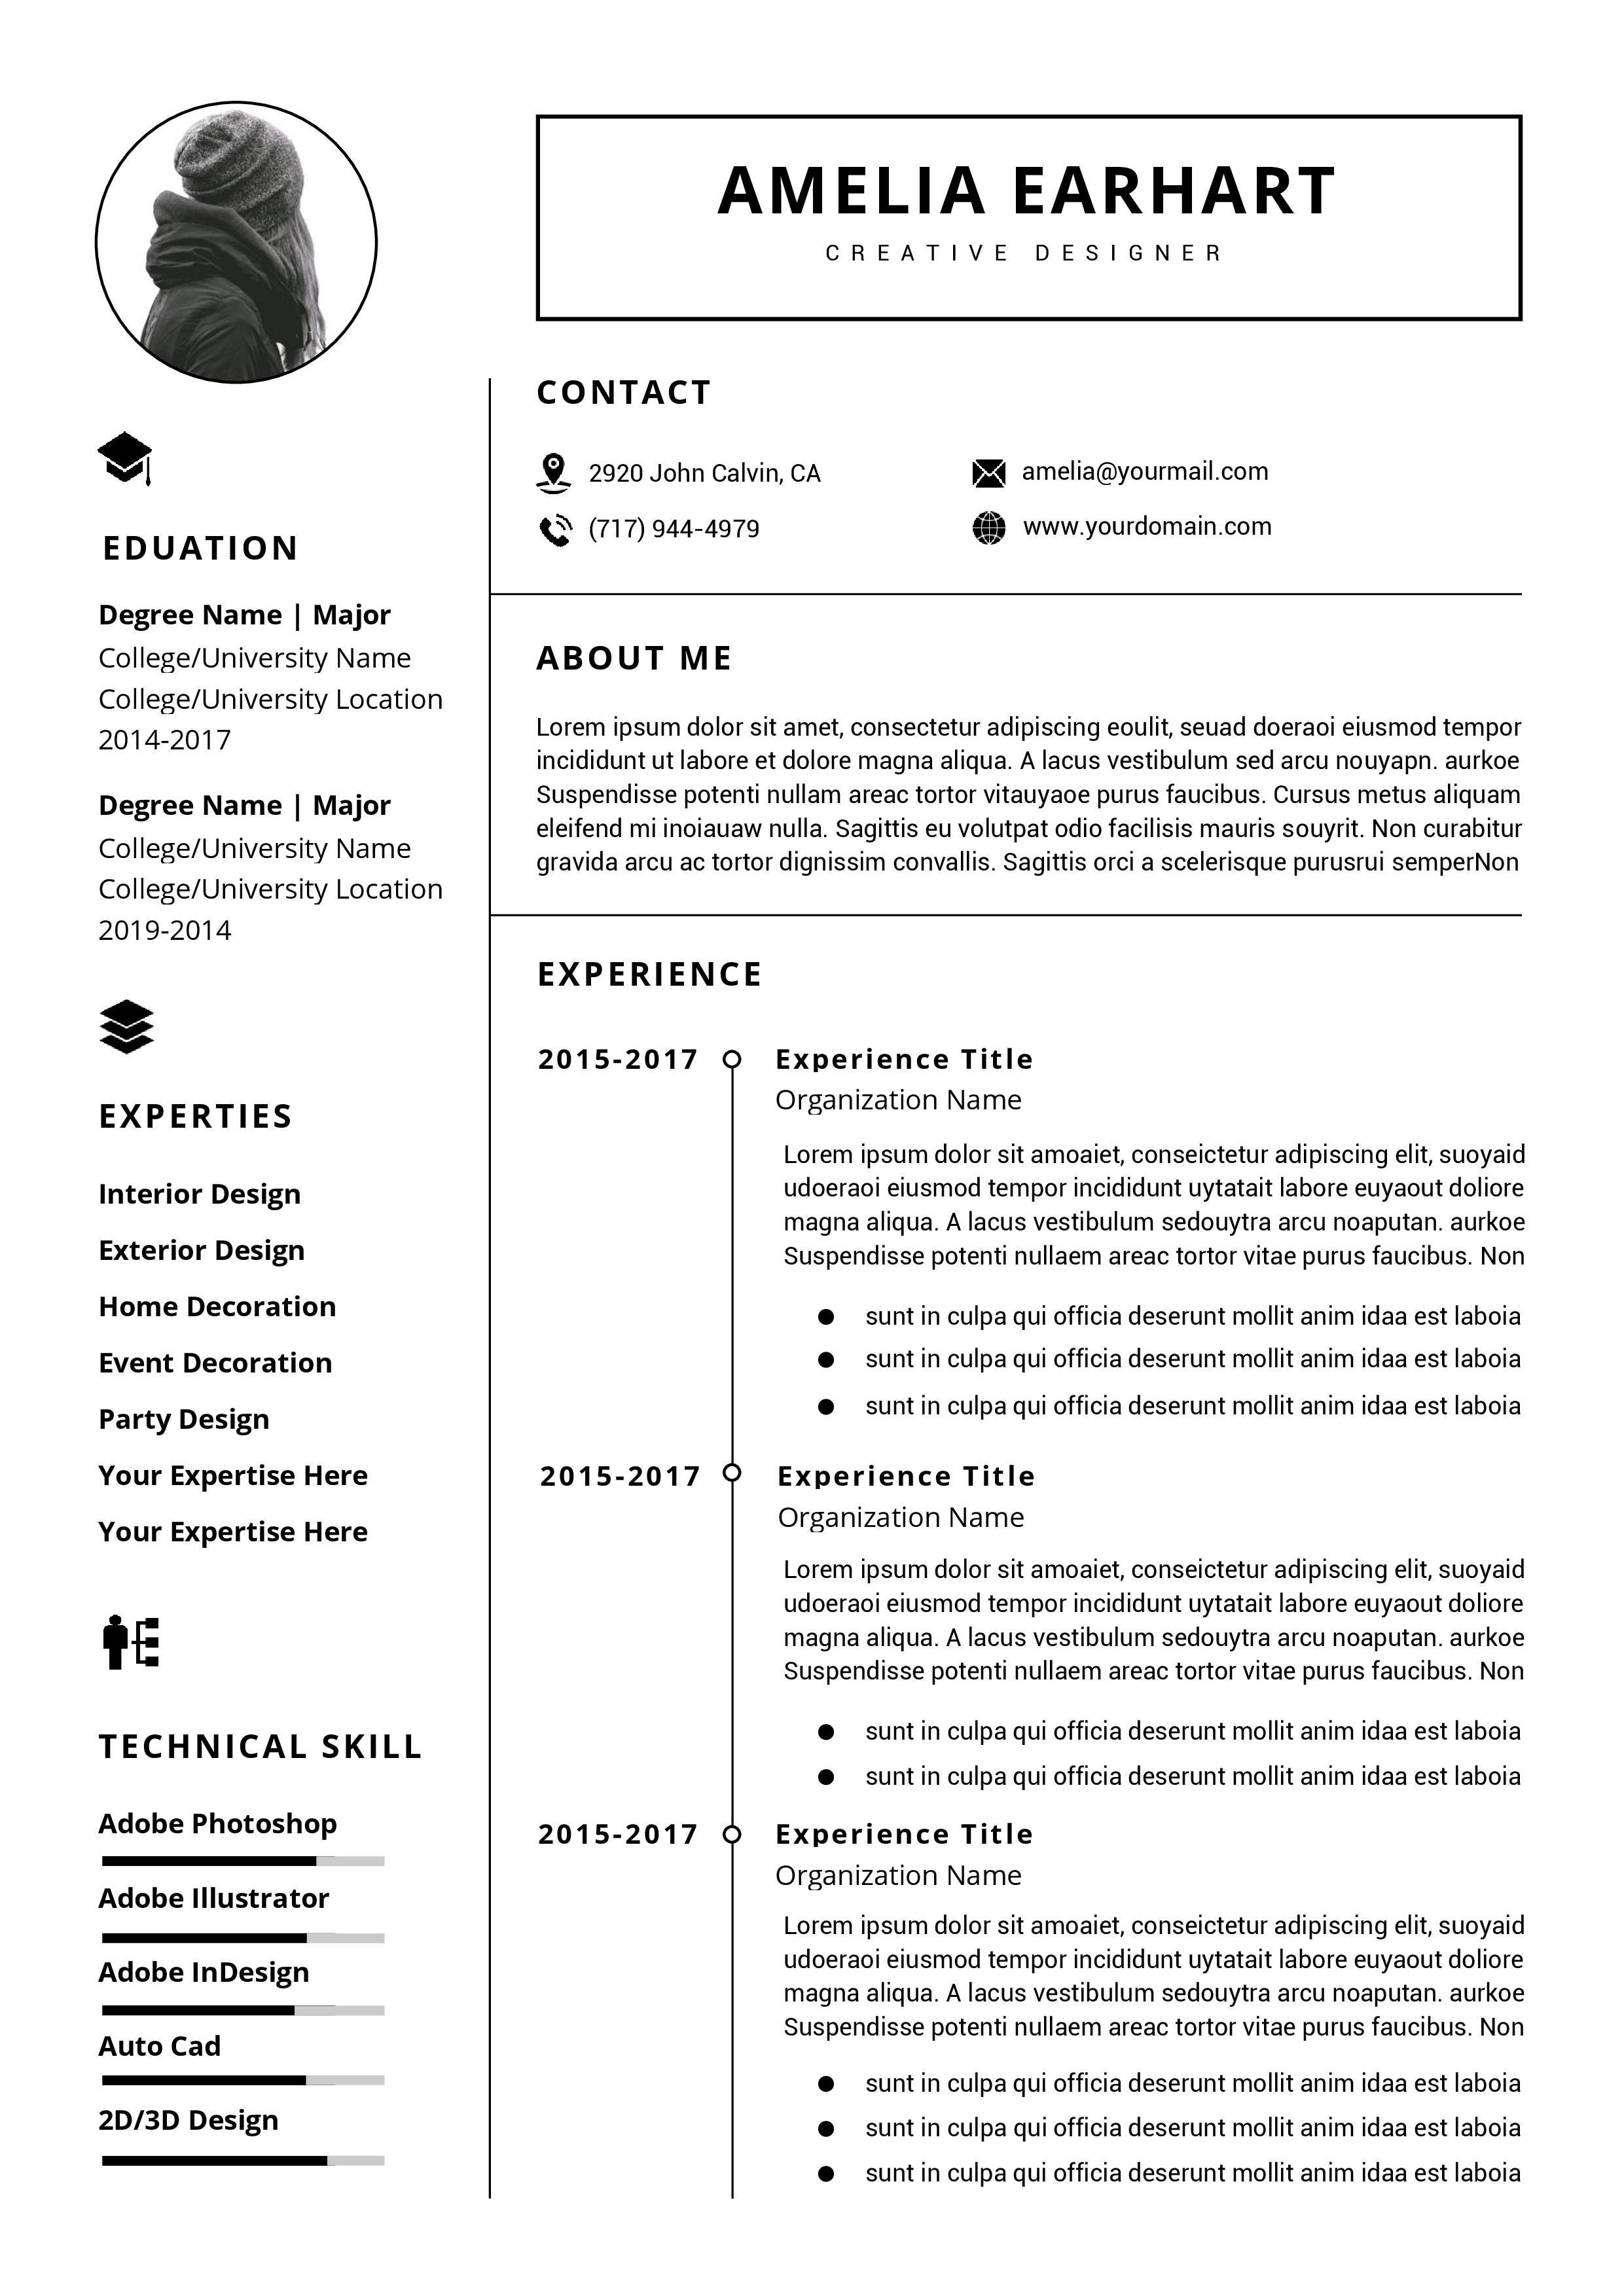 001 Impressive Professional Resume Template Word Picture  Microsoft Download Free 2010 2019Full